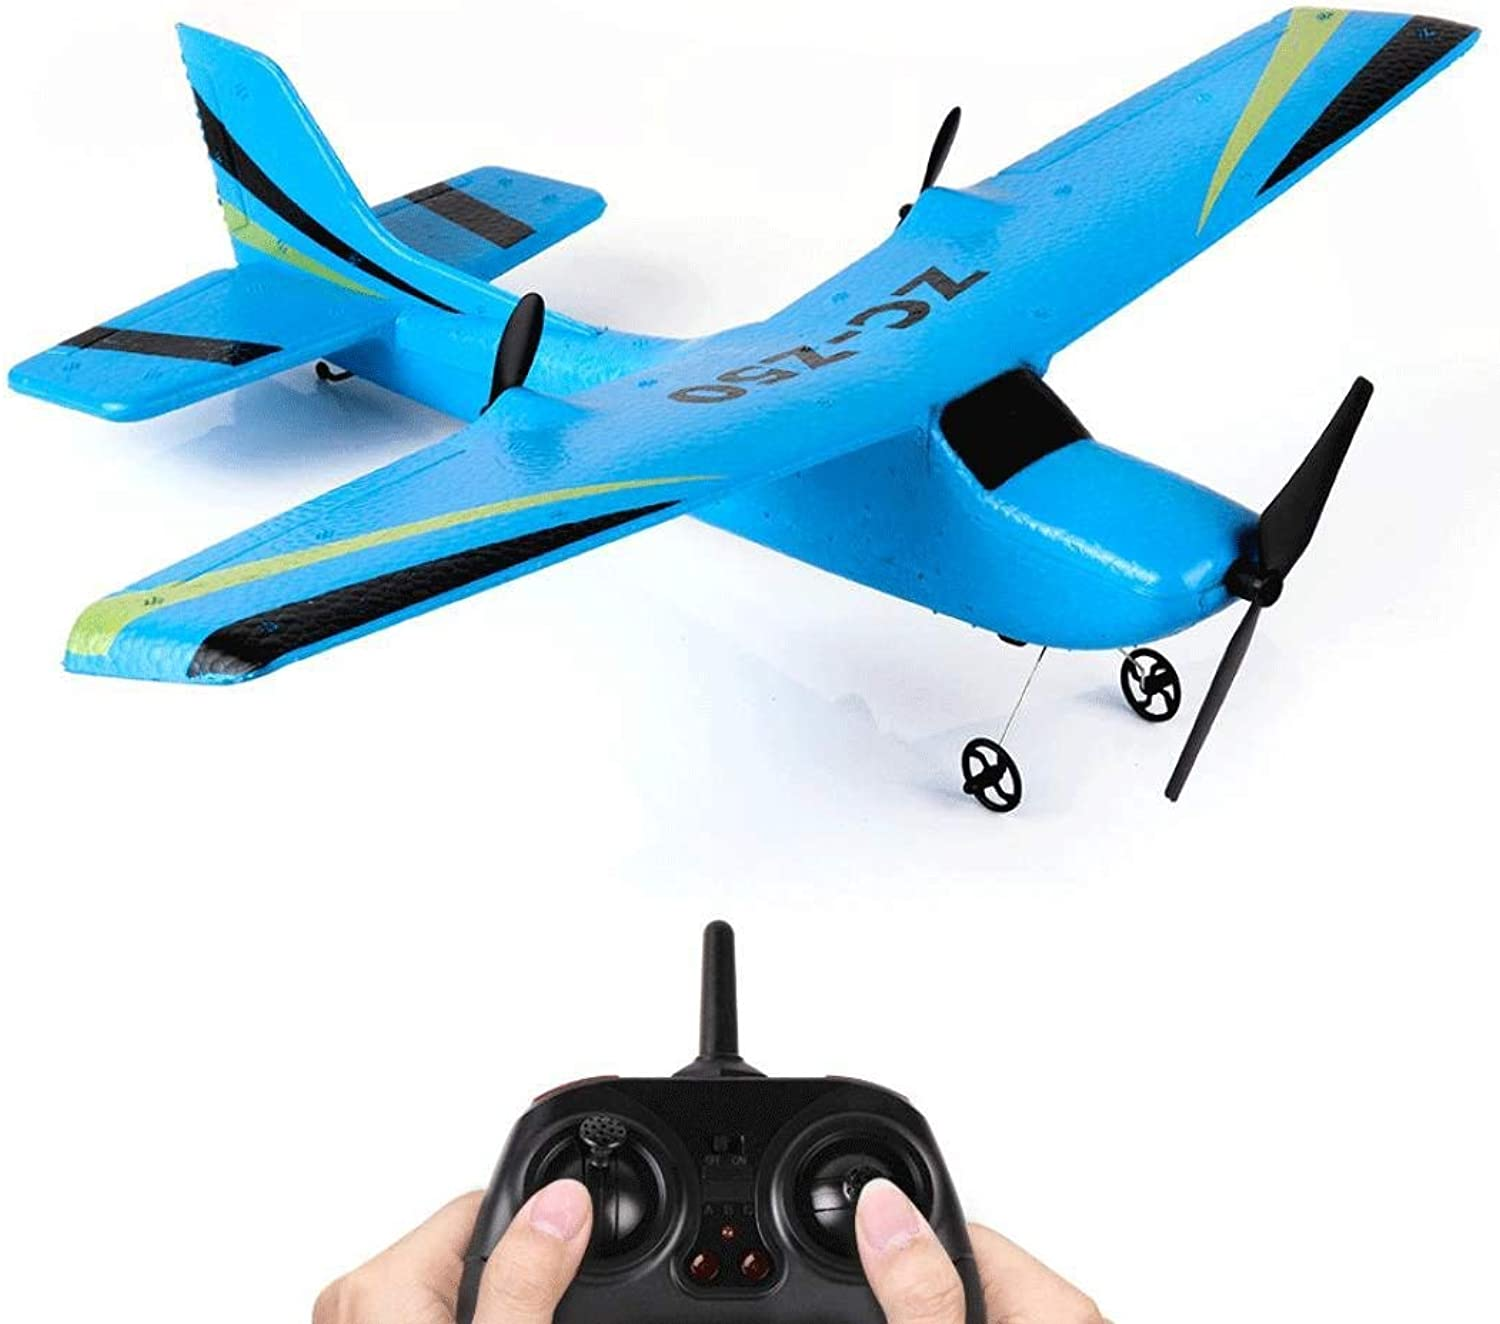 AXJJ RC Aeroplane Flying Glider Z50 Gyro RTF Remote Control EPP Foam Wingspan Aircraft Helicopter Micro Plane Airplane Toy